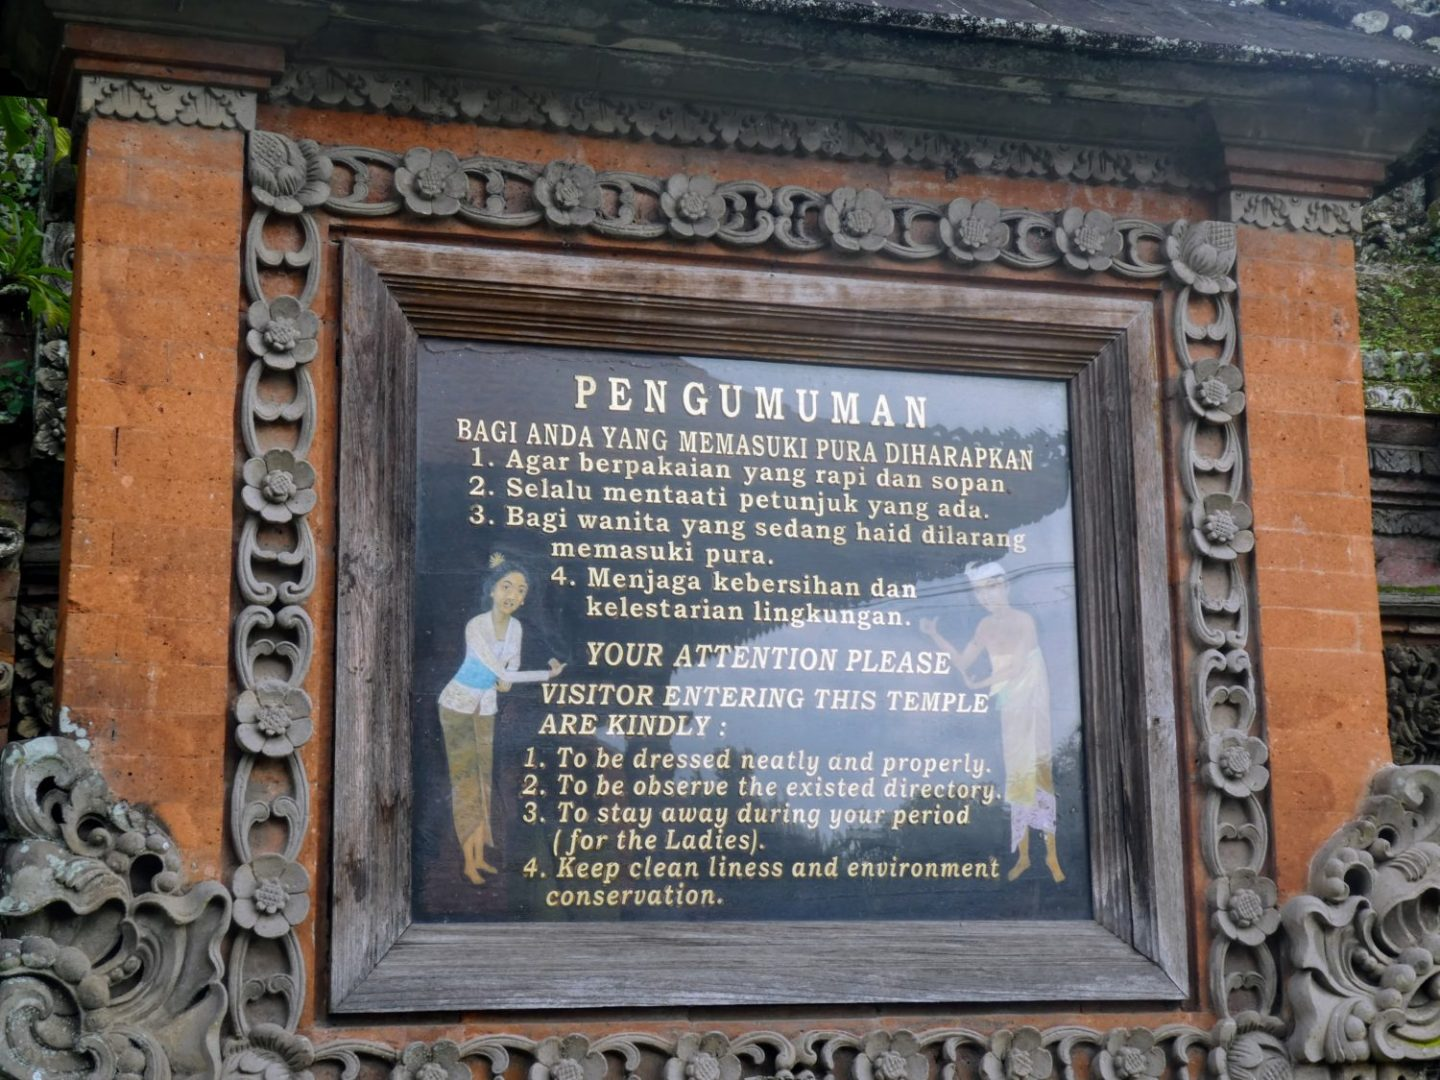 The rules for entering the temple   Photo Diary: Our Day in Bali   Gluten Free Horizons